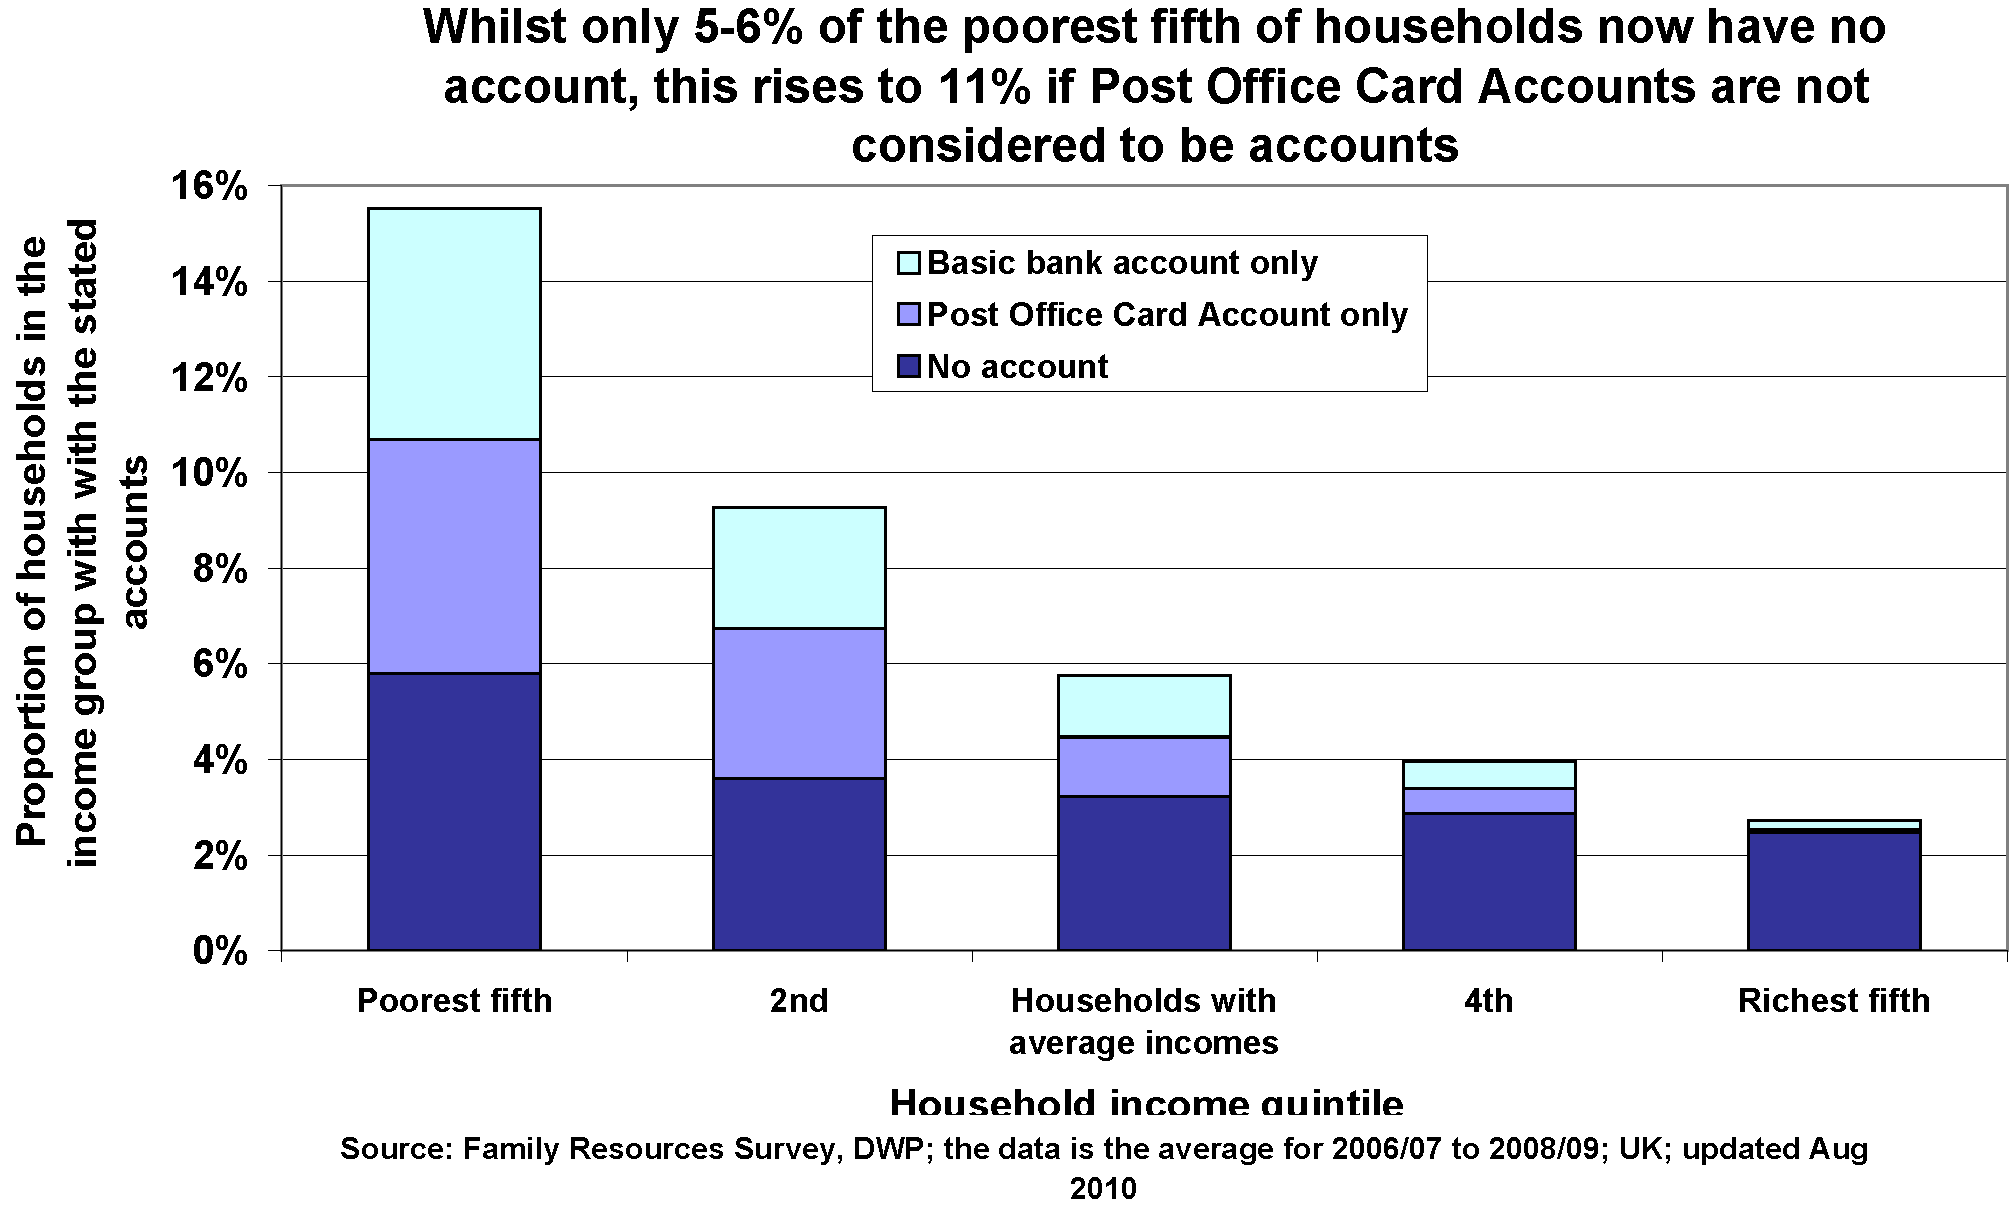 Without a bank account - poverty